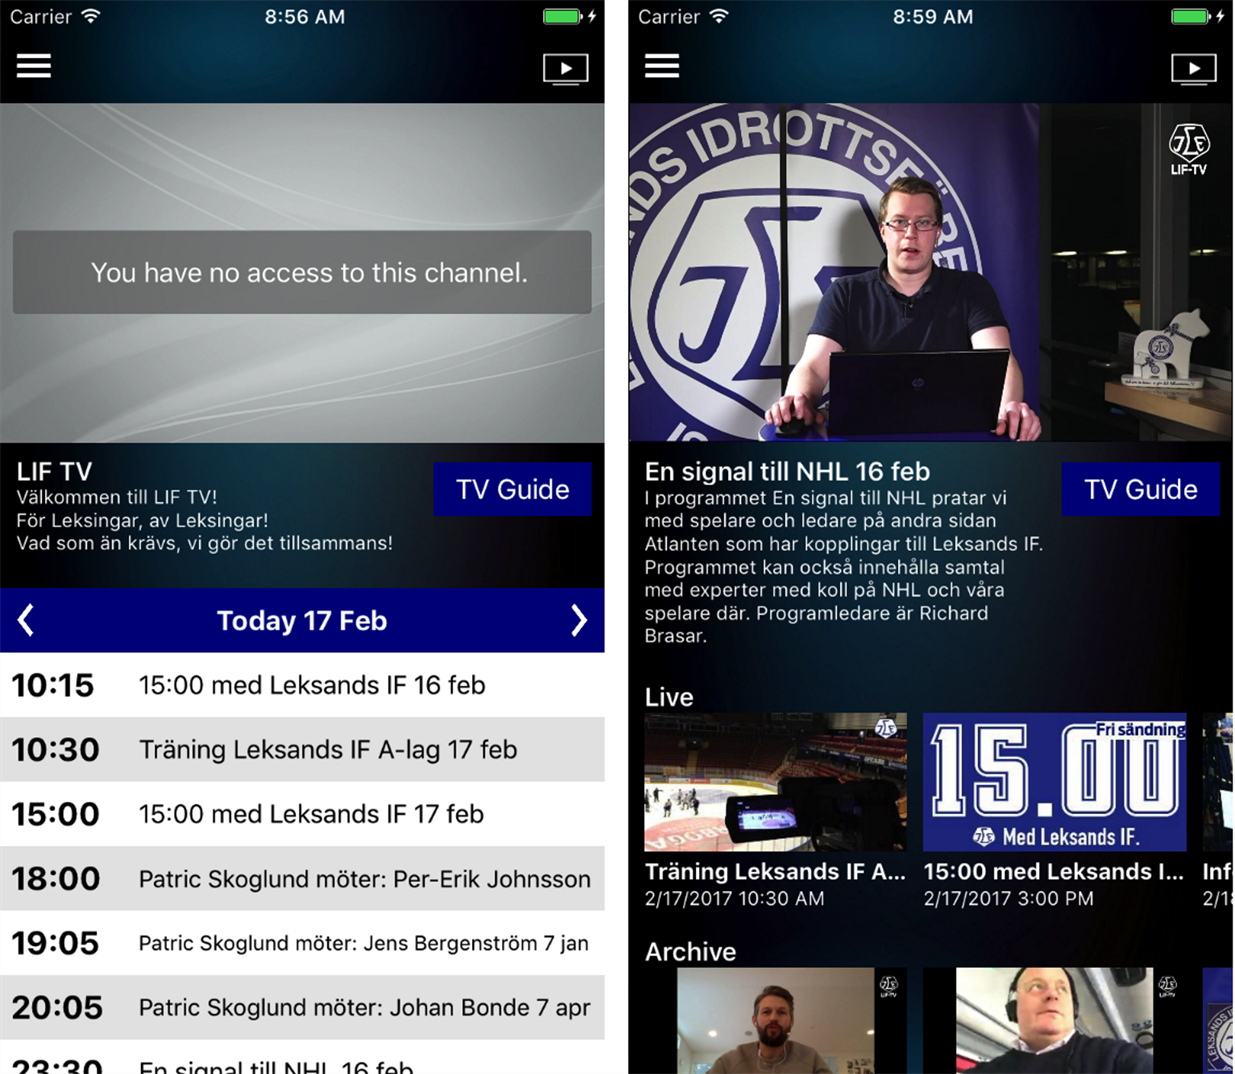 building white-labeled livearena video-streaming apps for mobile, Presentation templates